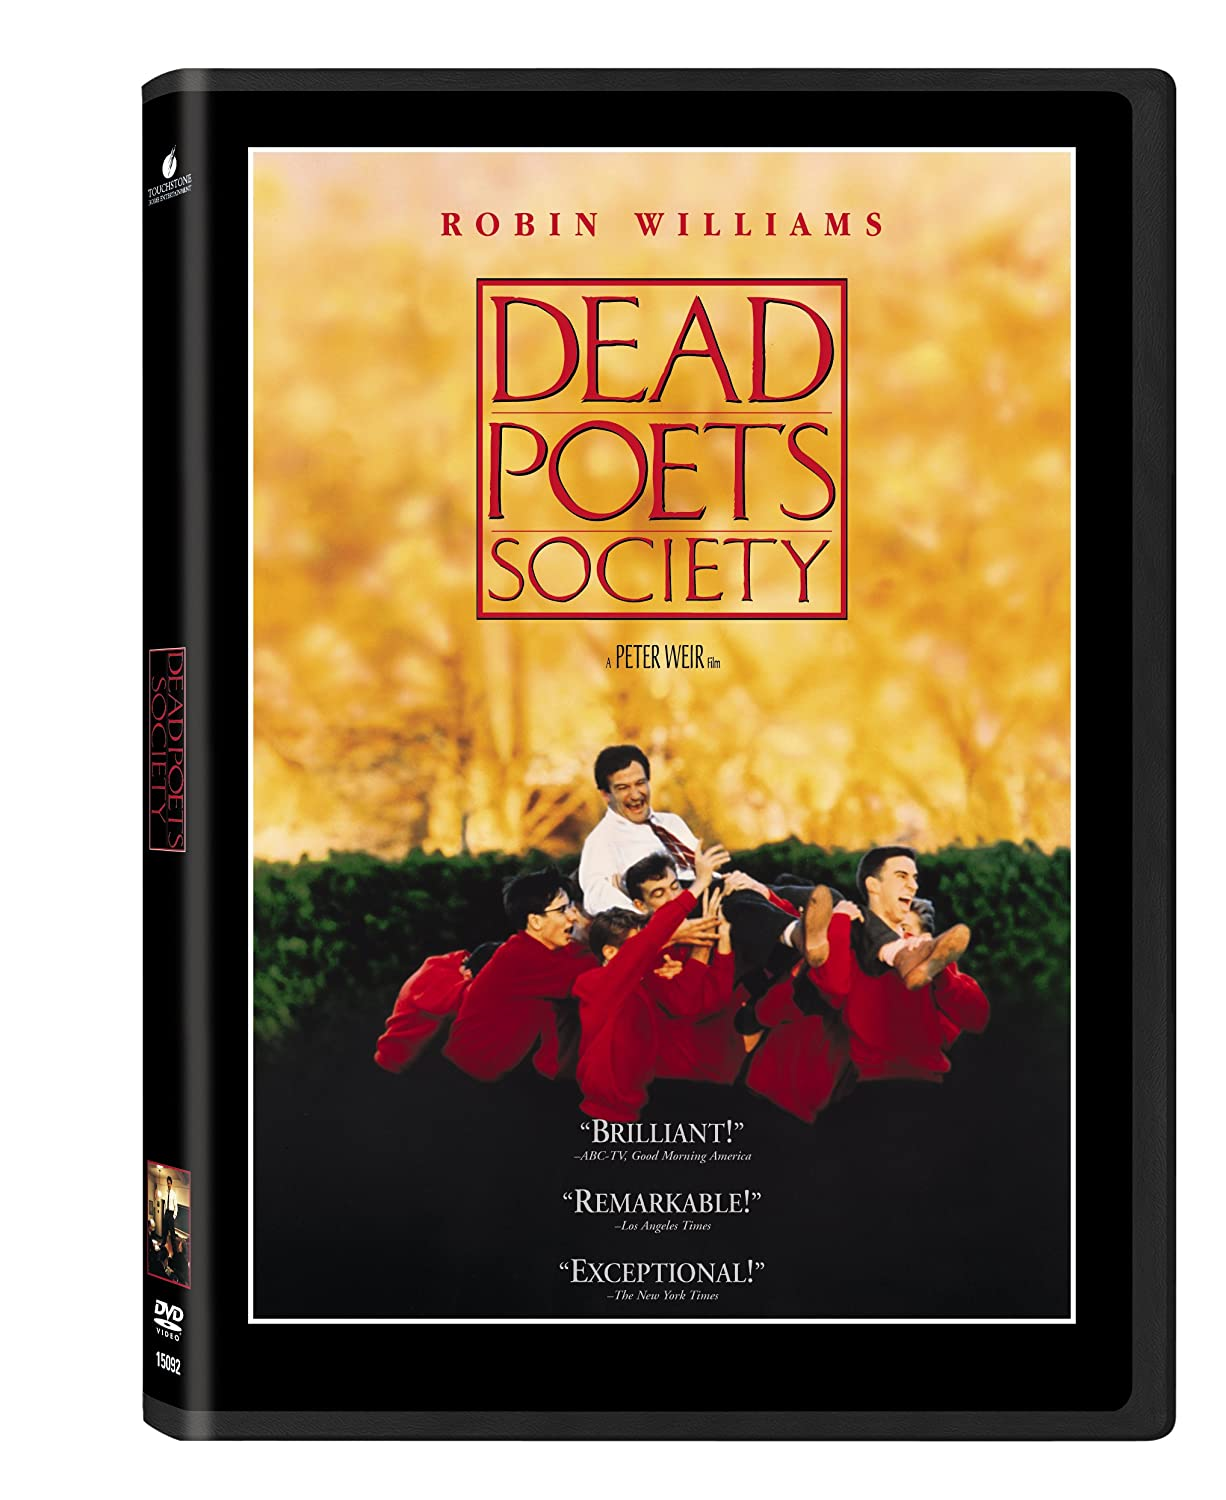 com dead poets society robin williams robert sean  com dead poets society robin williams robert sean leonard ethan hawke josh charles gale hansen dylan kussman allelon ruggiero norman lloyd